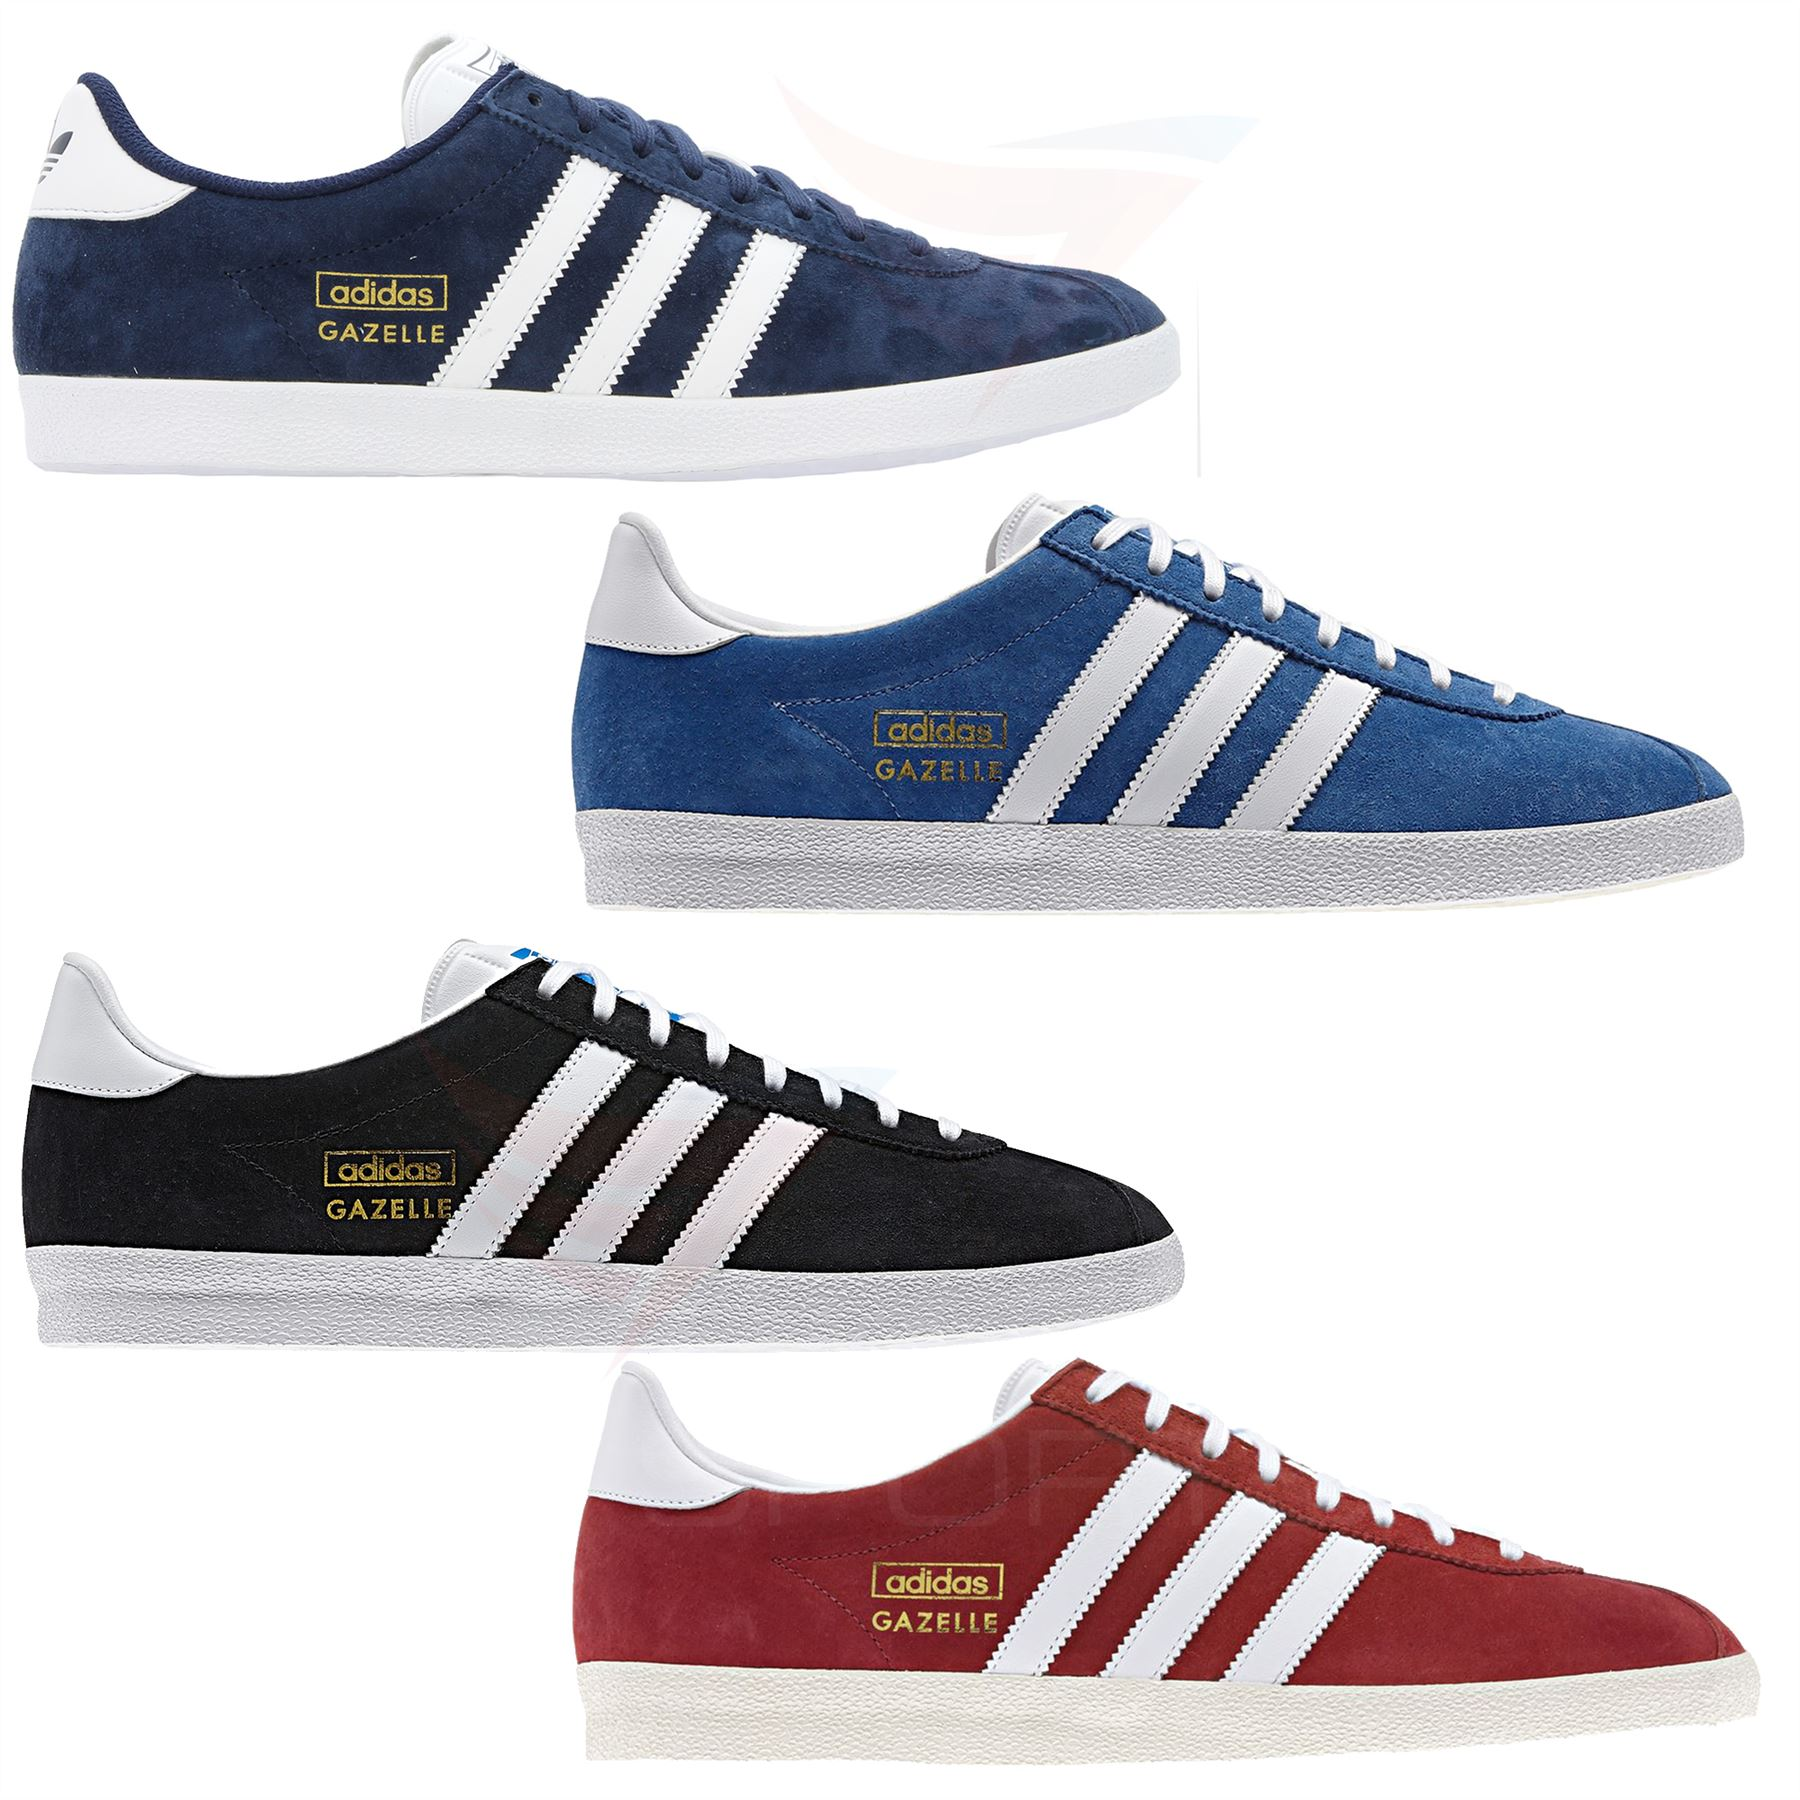 Details about adidas ORIGINALS MEN S GAZELLE TRAINERS SIZE 7 8 9 10 11 12  SUEDE LEATHER SHOES 9f13e97c3